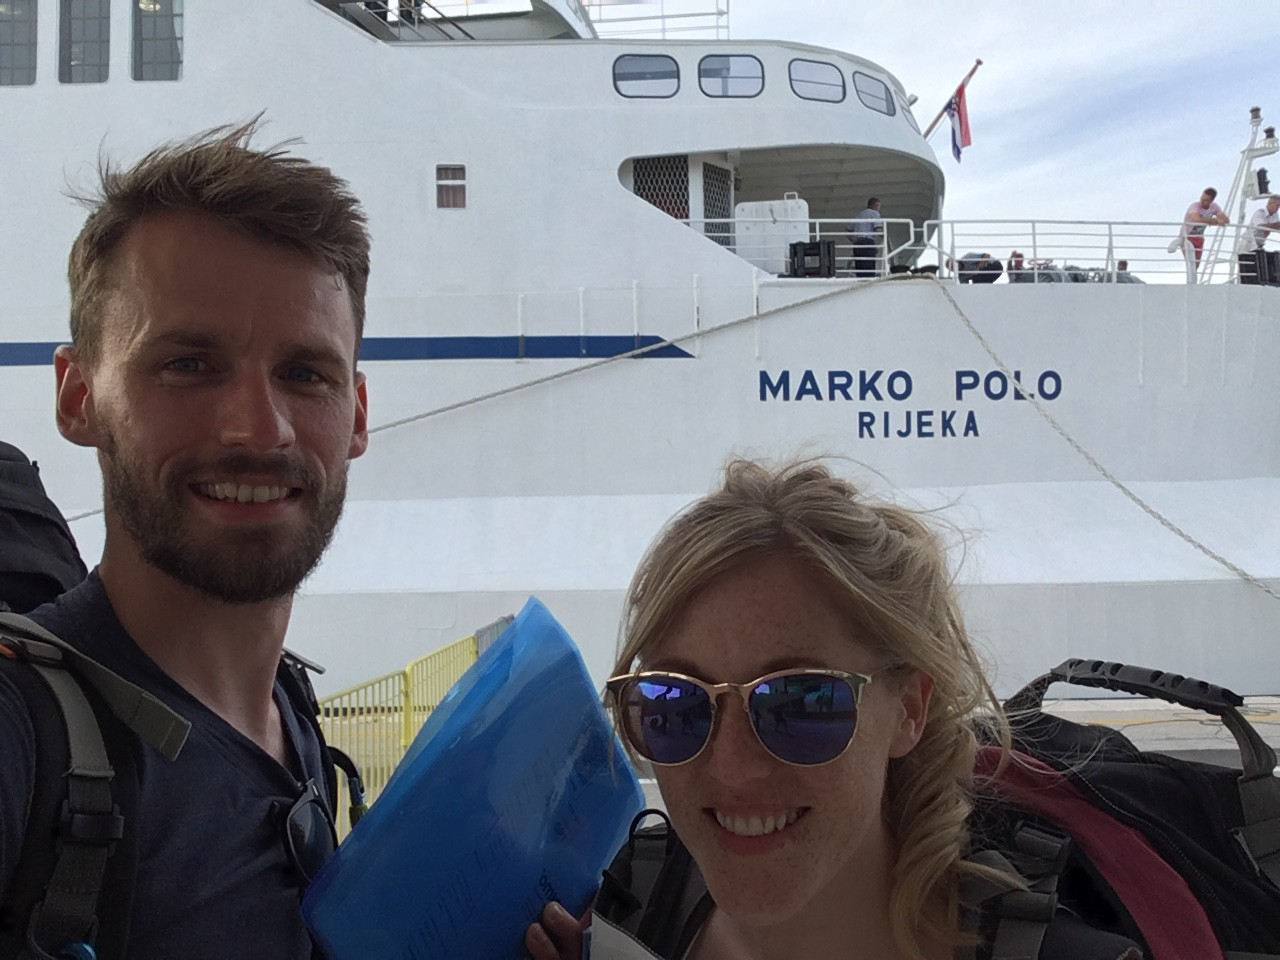 Two people with a ferry in the background